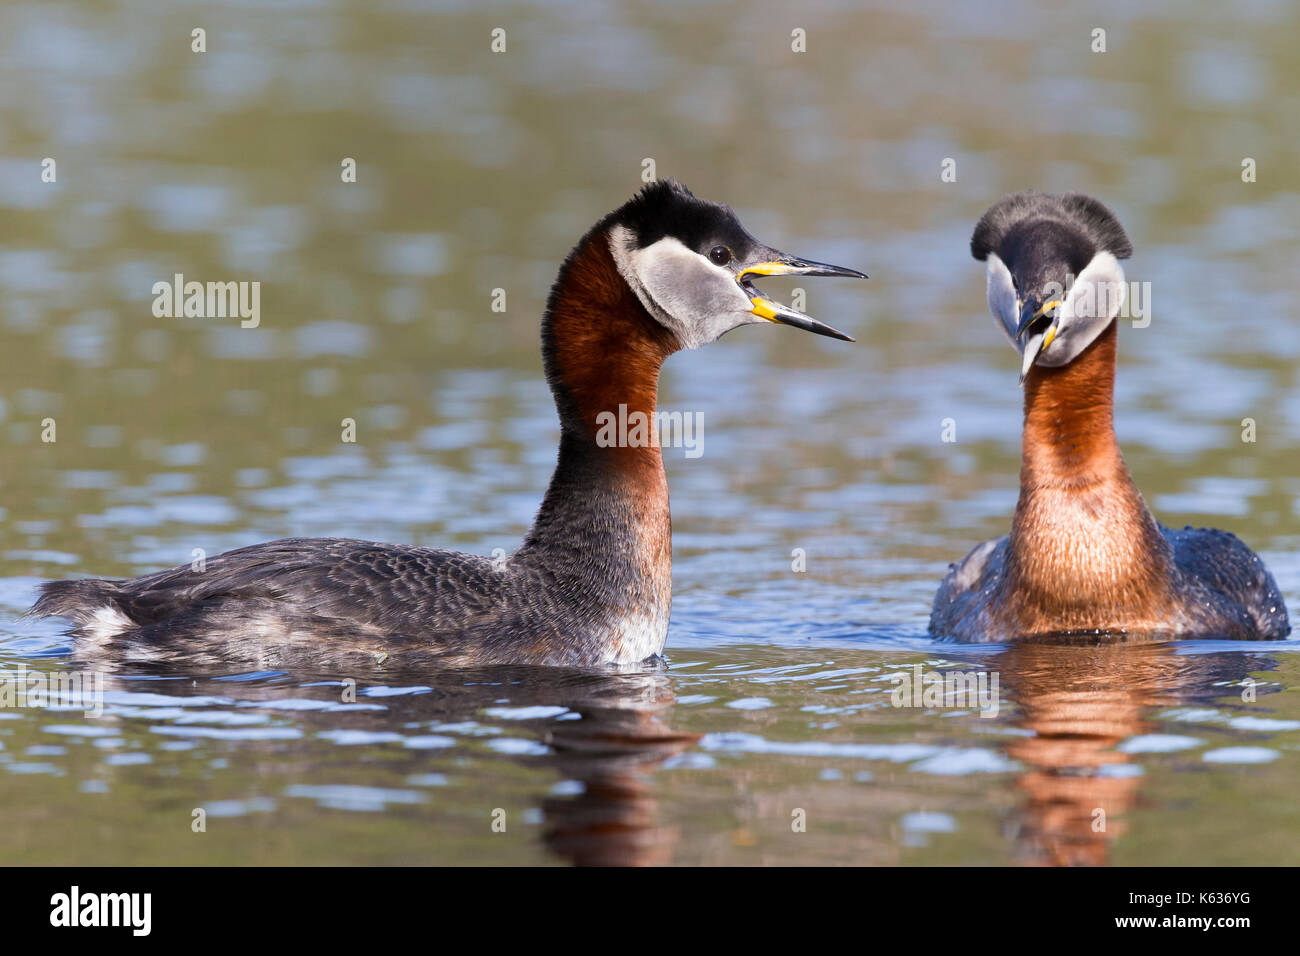 Red-necked Grebe (Podiceps grisegena), couple displaying in the water - Stock Image